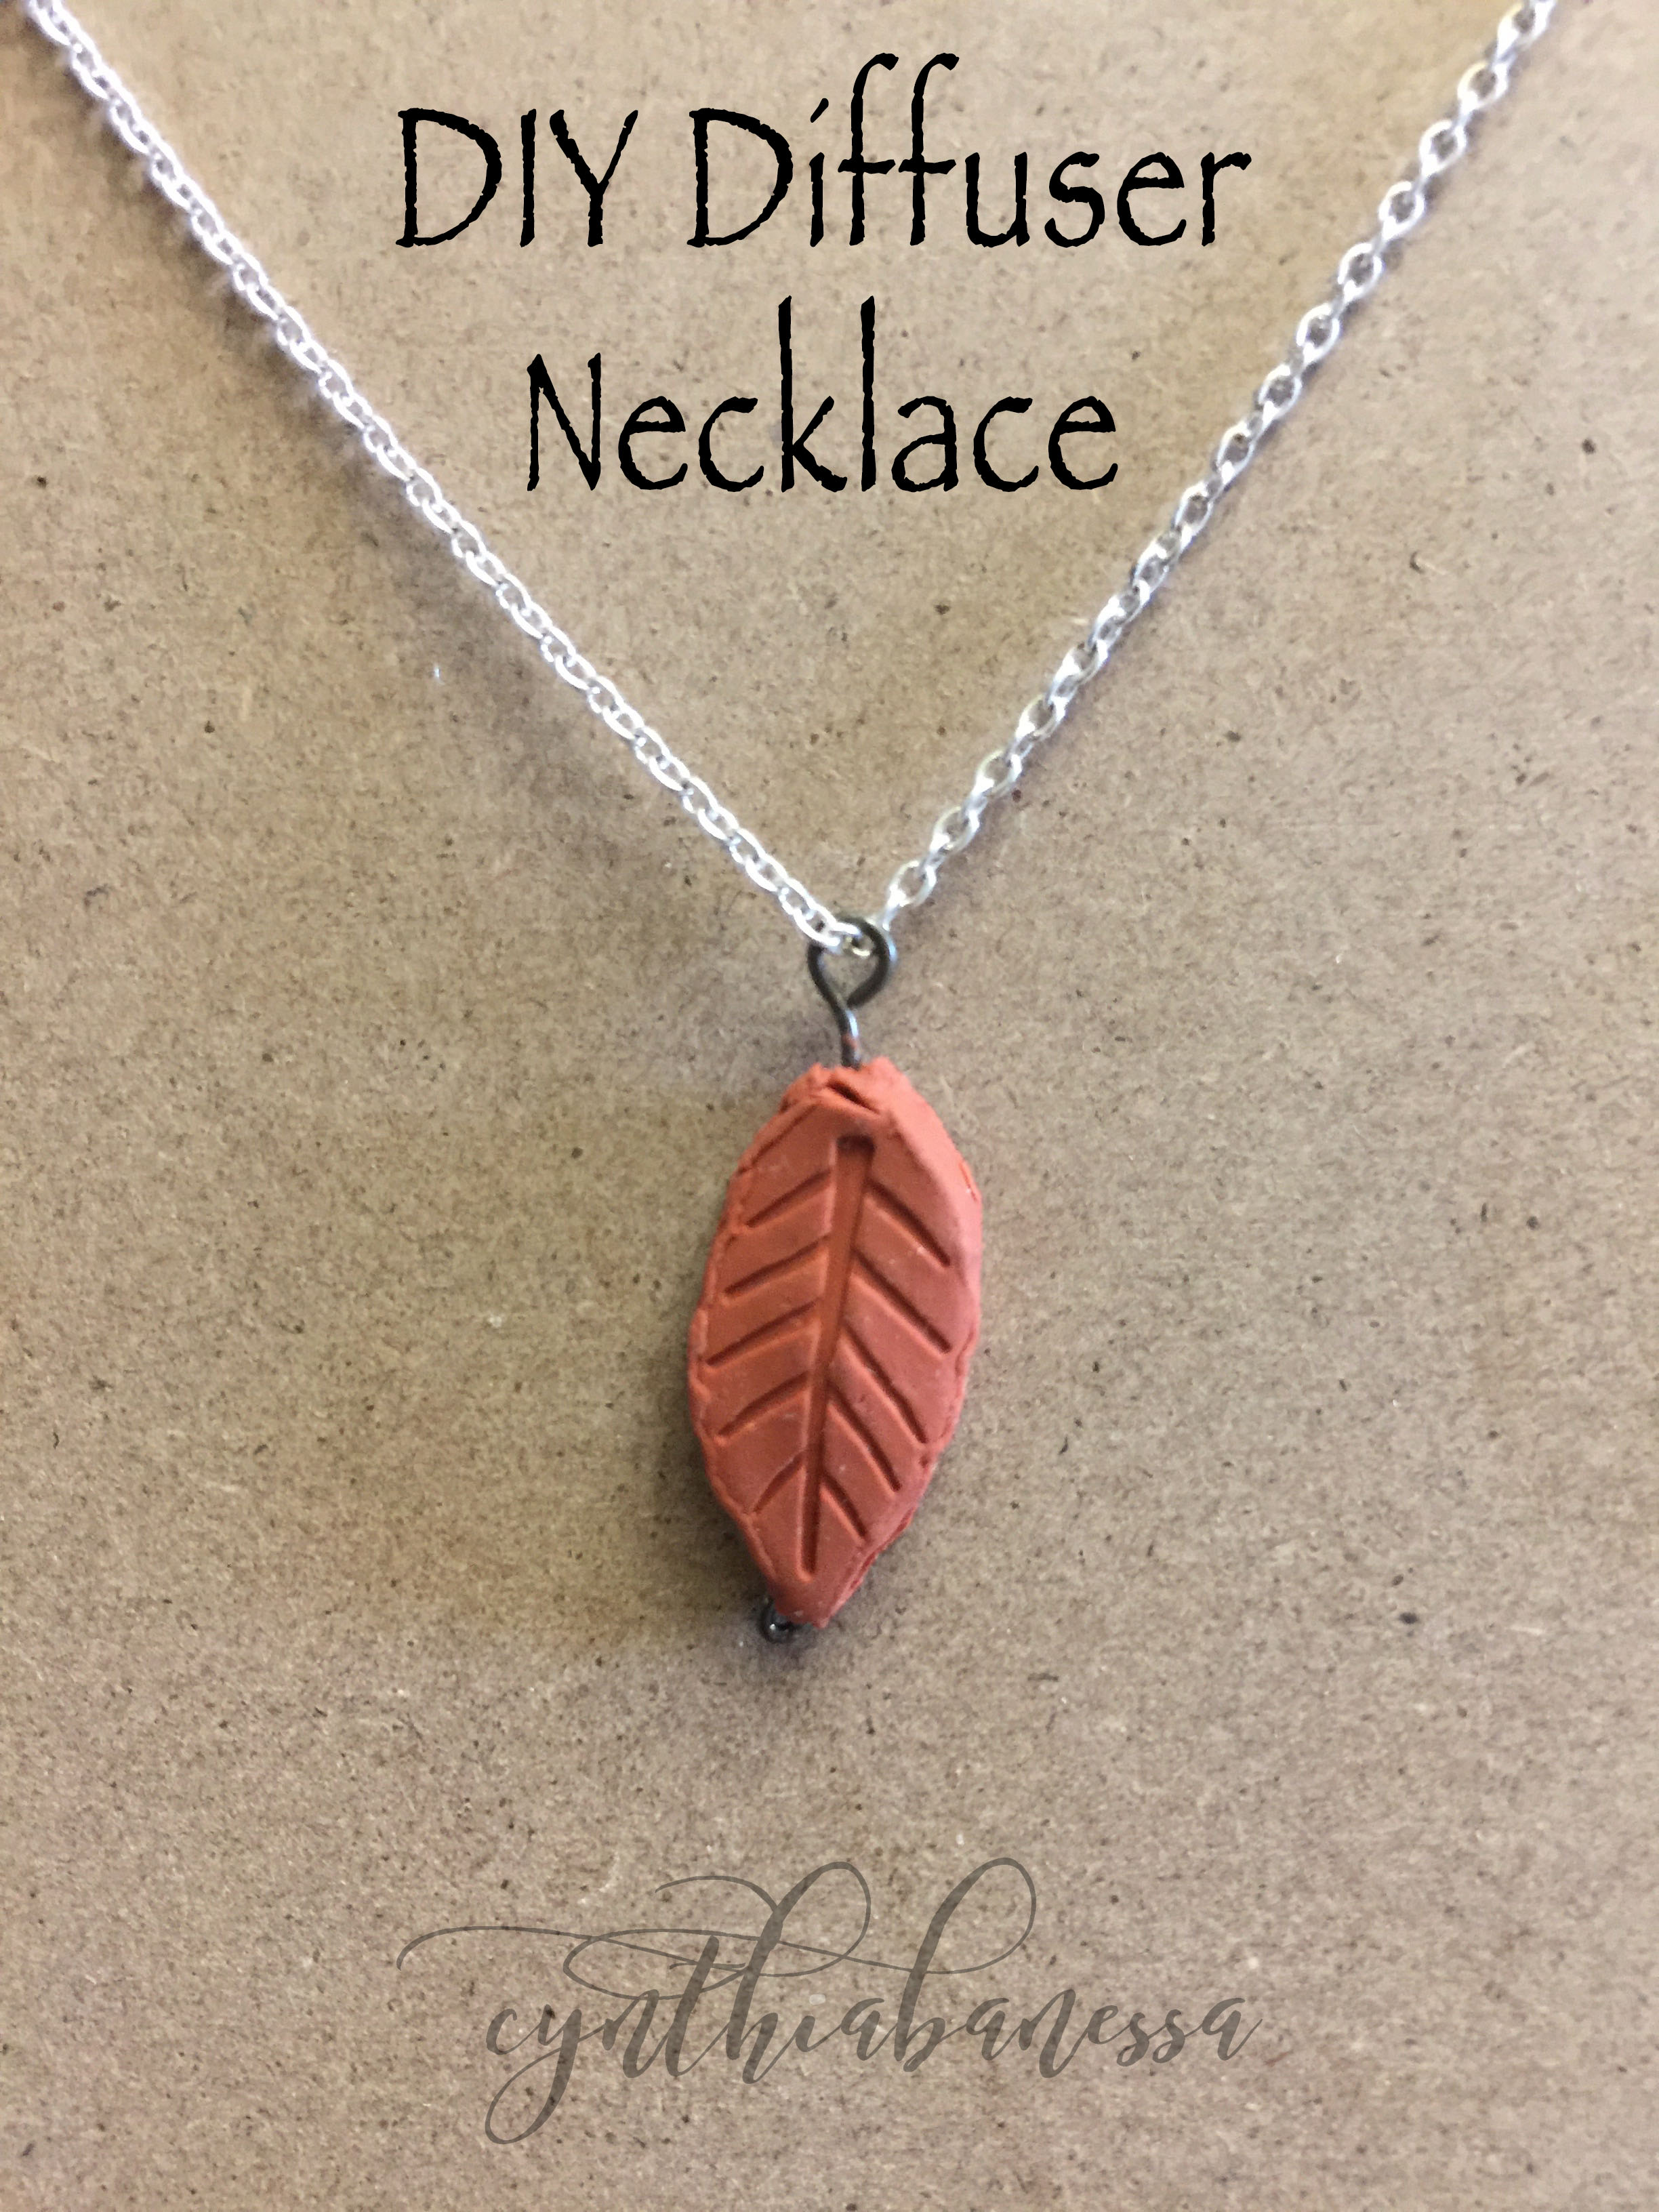 DIY Diffuser Necklace